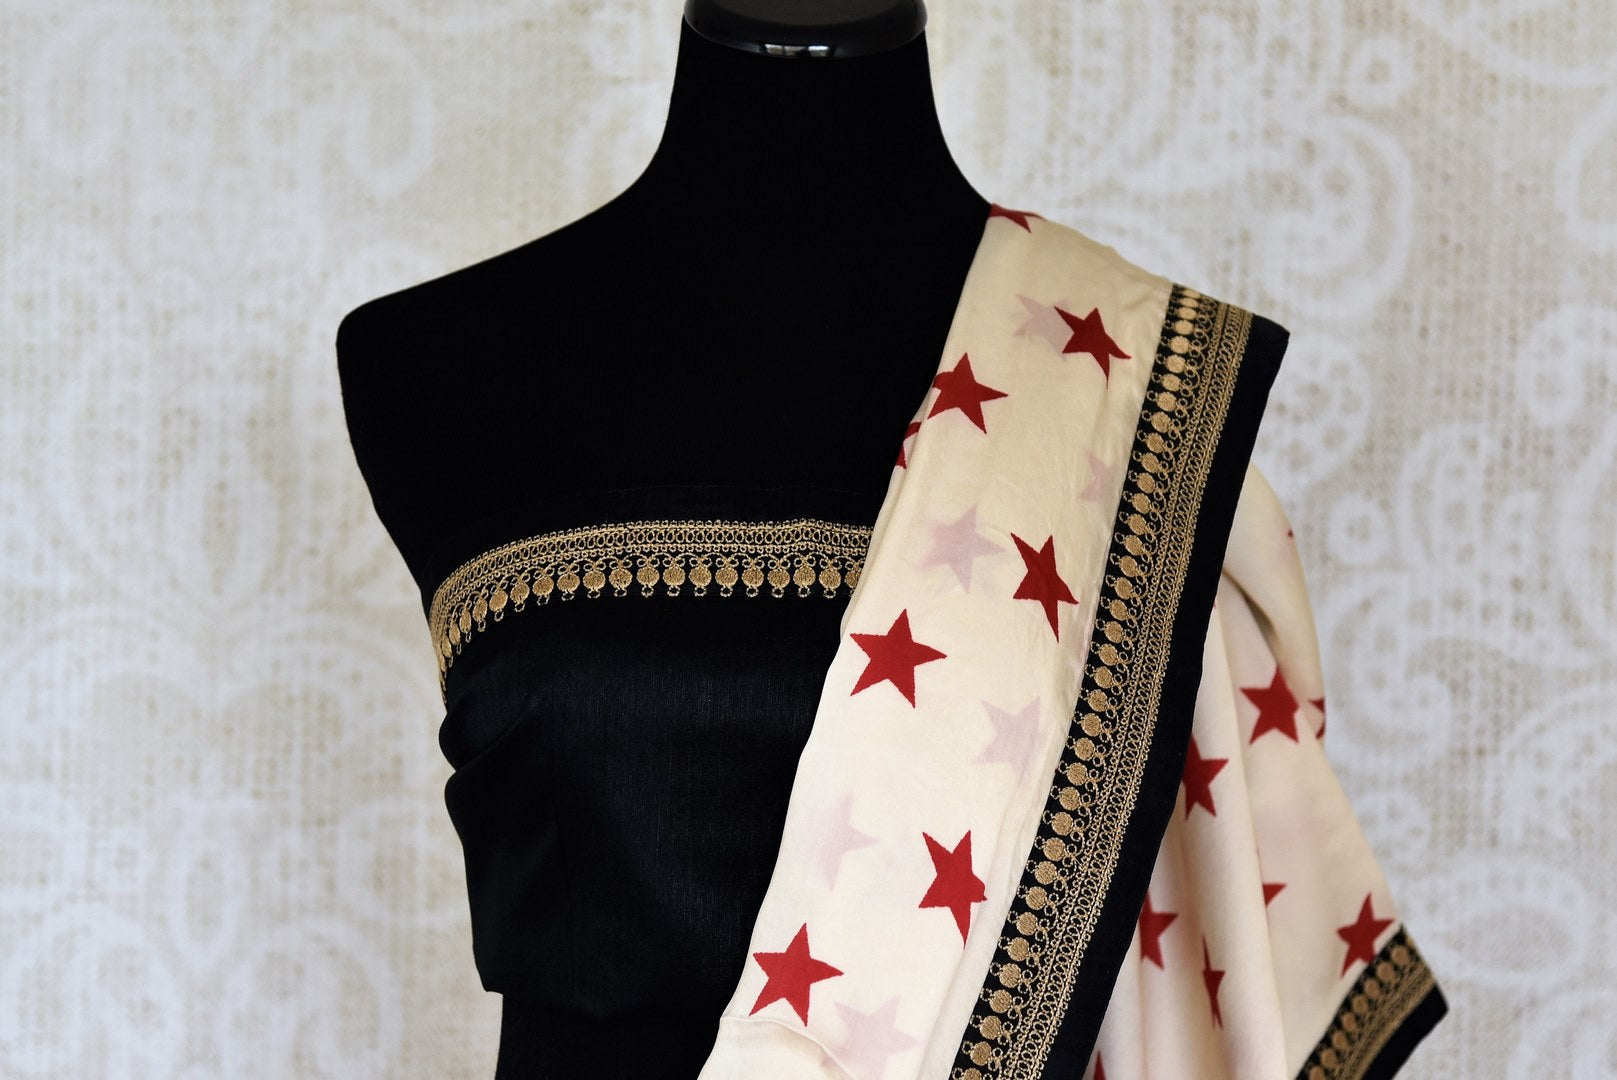 Shop off-white star print crepe saree with embroidered border online in USA from Pure Elegance. Let your ethnic style be one of a kind with an exquisite variety of Indian designer sarees, pure silk sarees, Bollywood sarees from our exclusive fashion store in USA.-blouse pallu